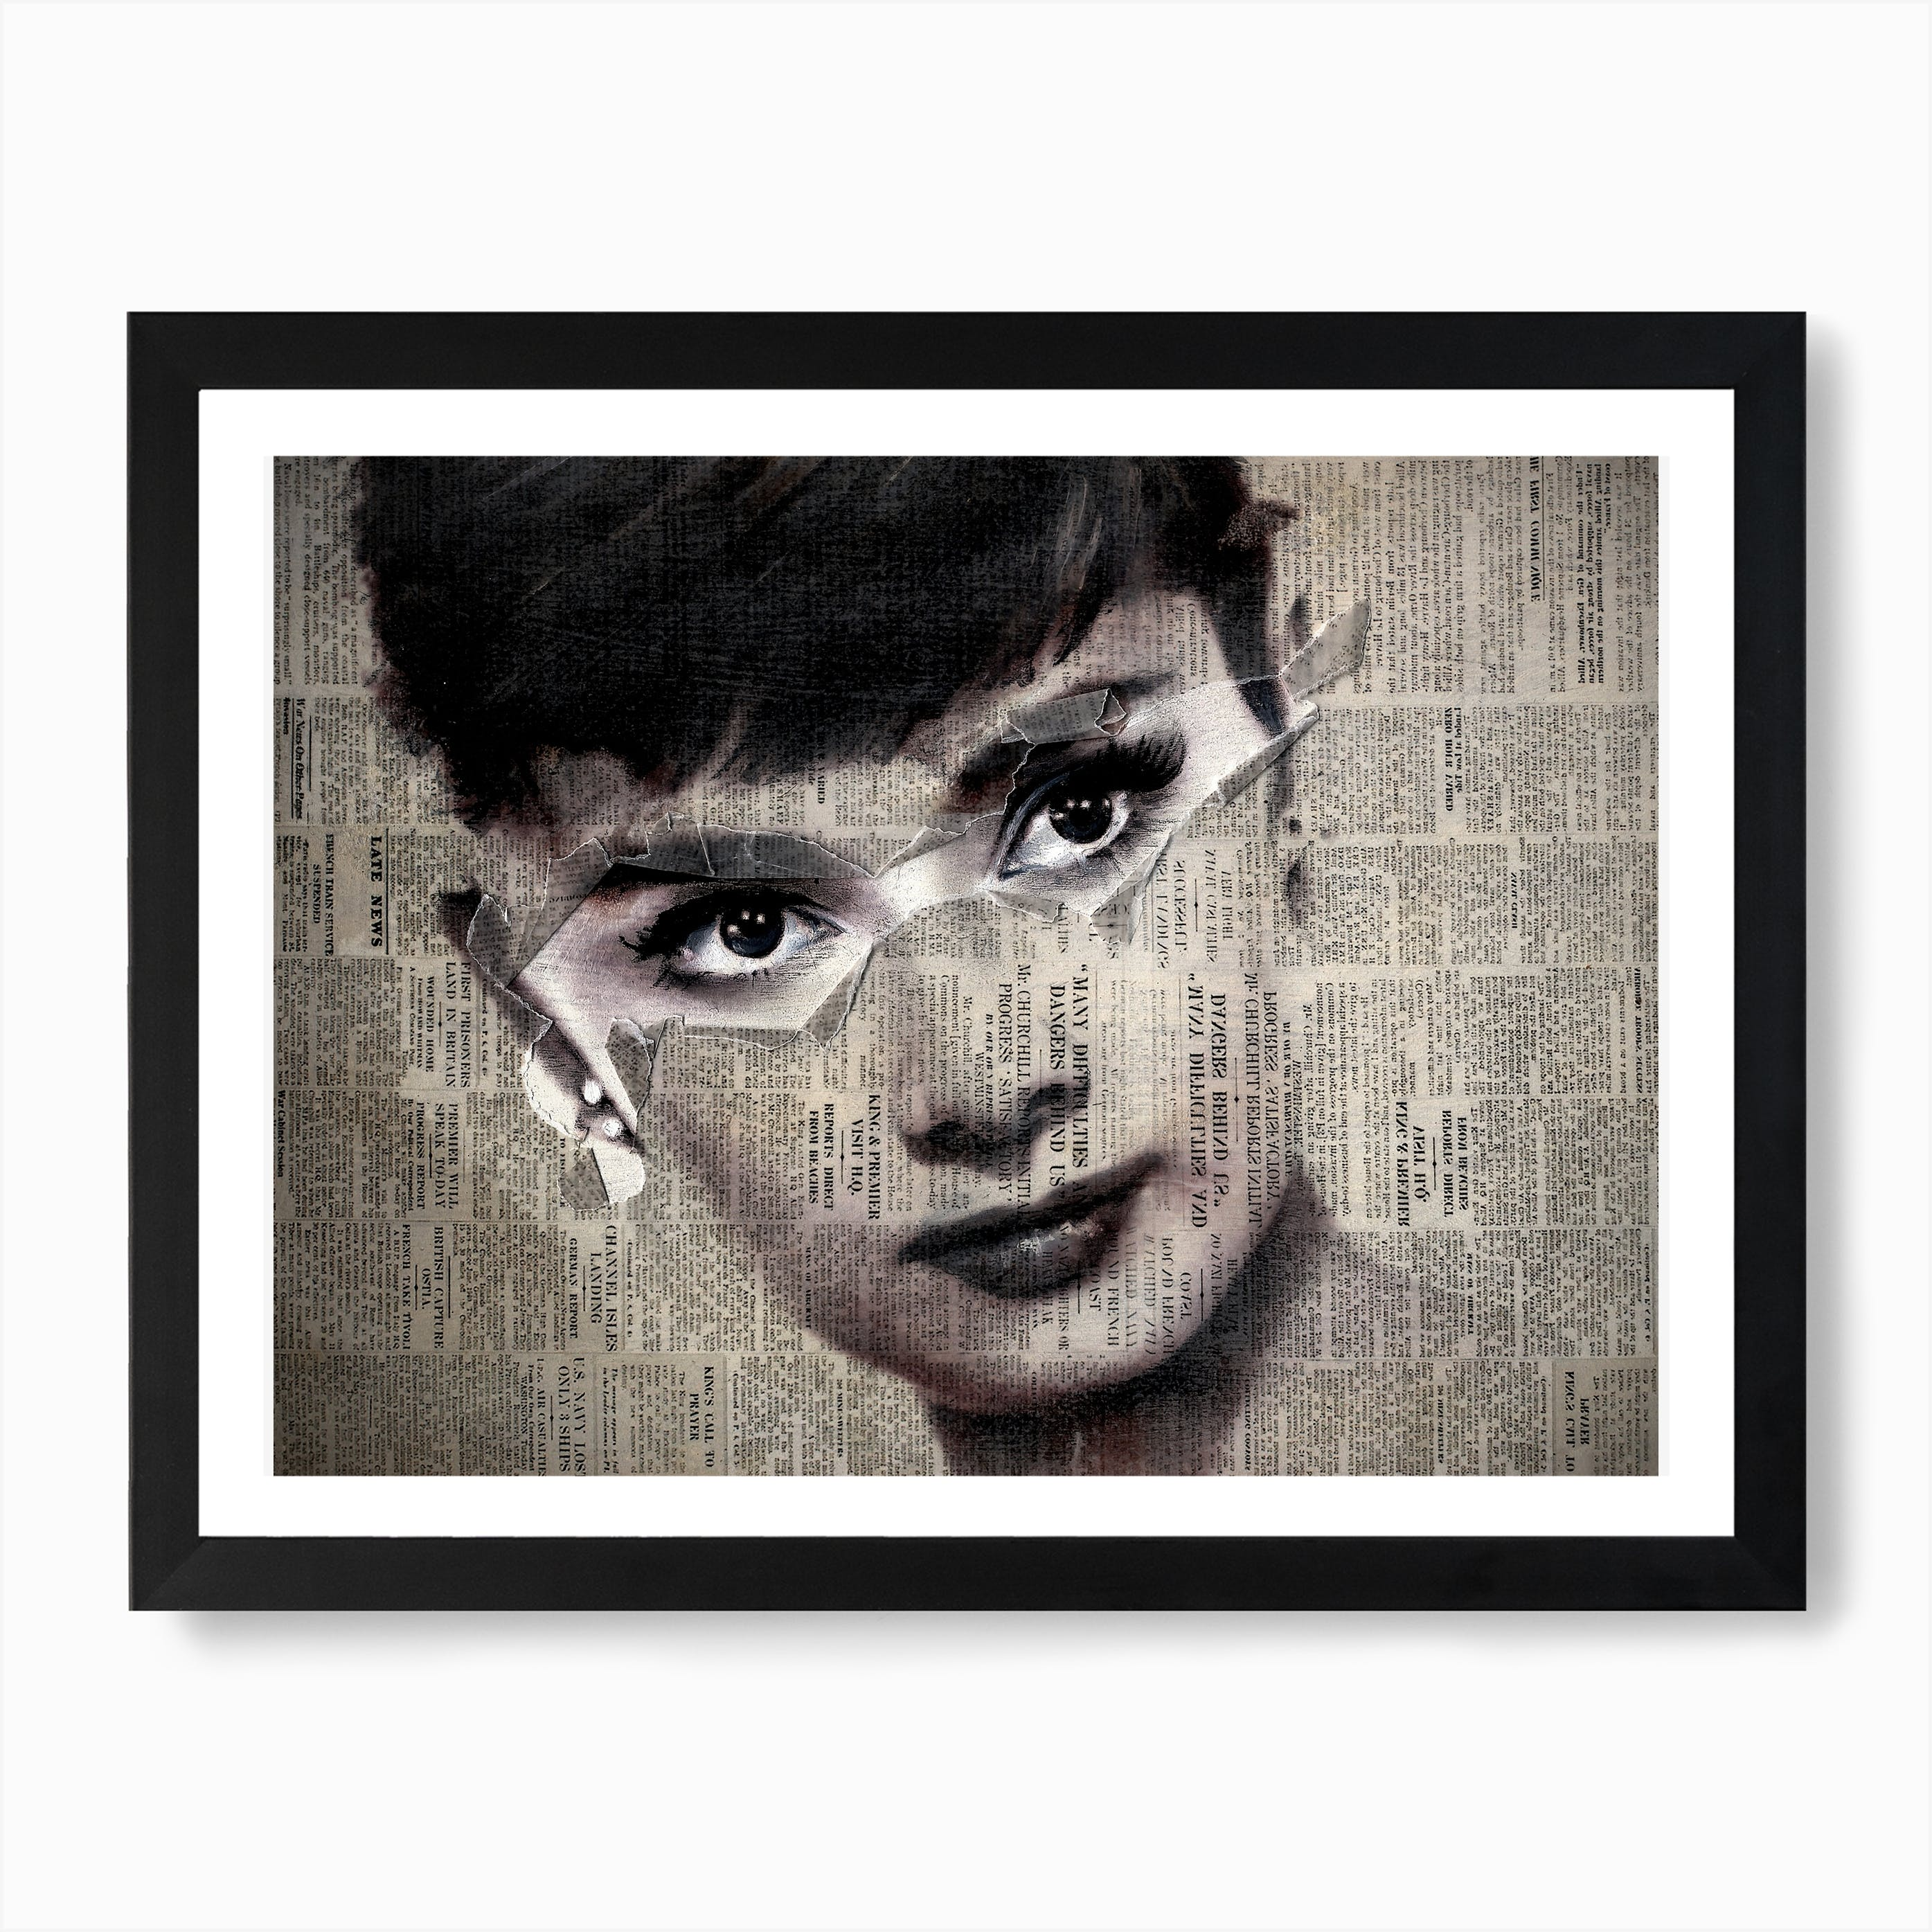 AUDREY HEPBURN CANVAS PICTURE PRINT WALL ART HOME DECOR FREE FAST DELIVERY